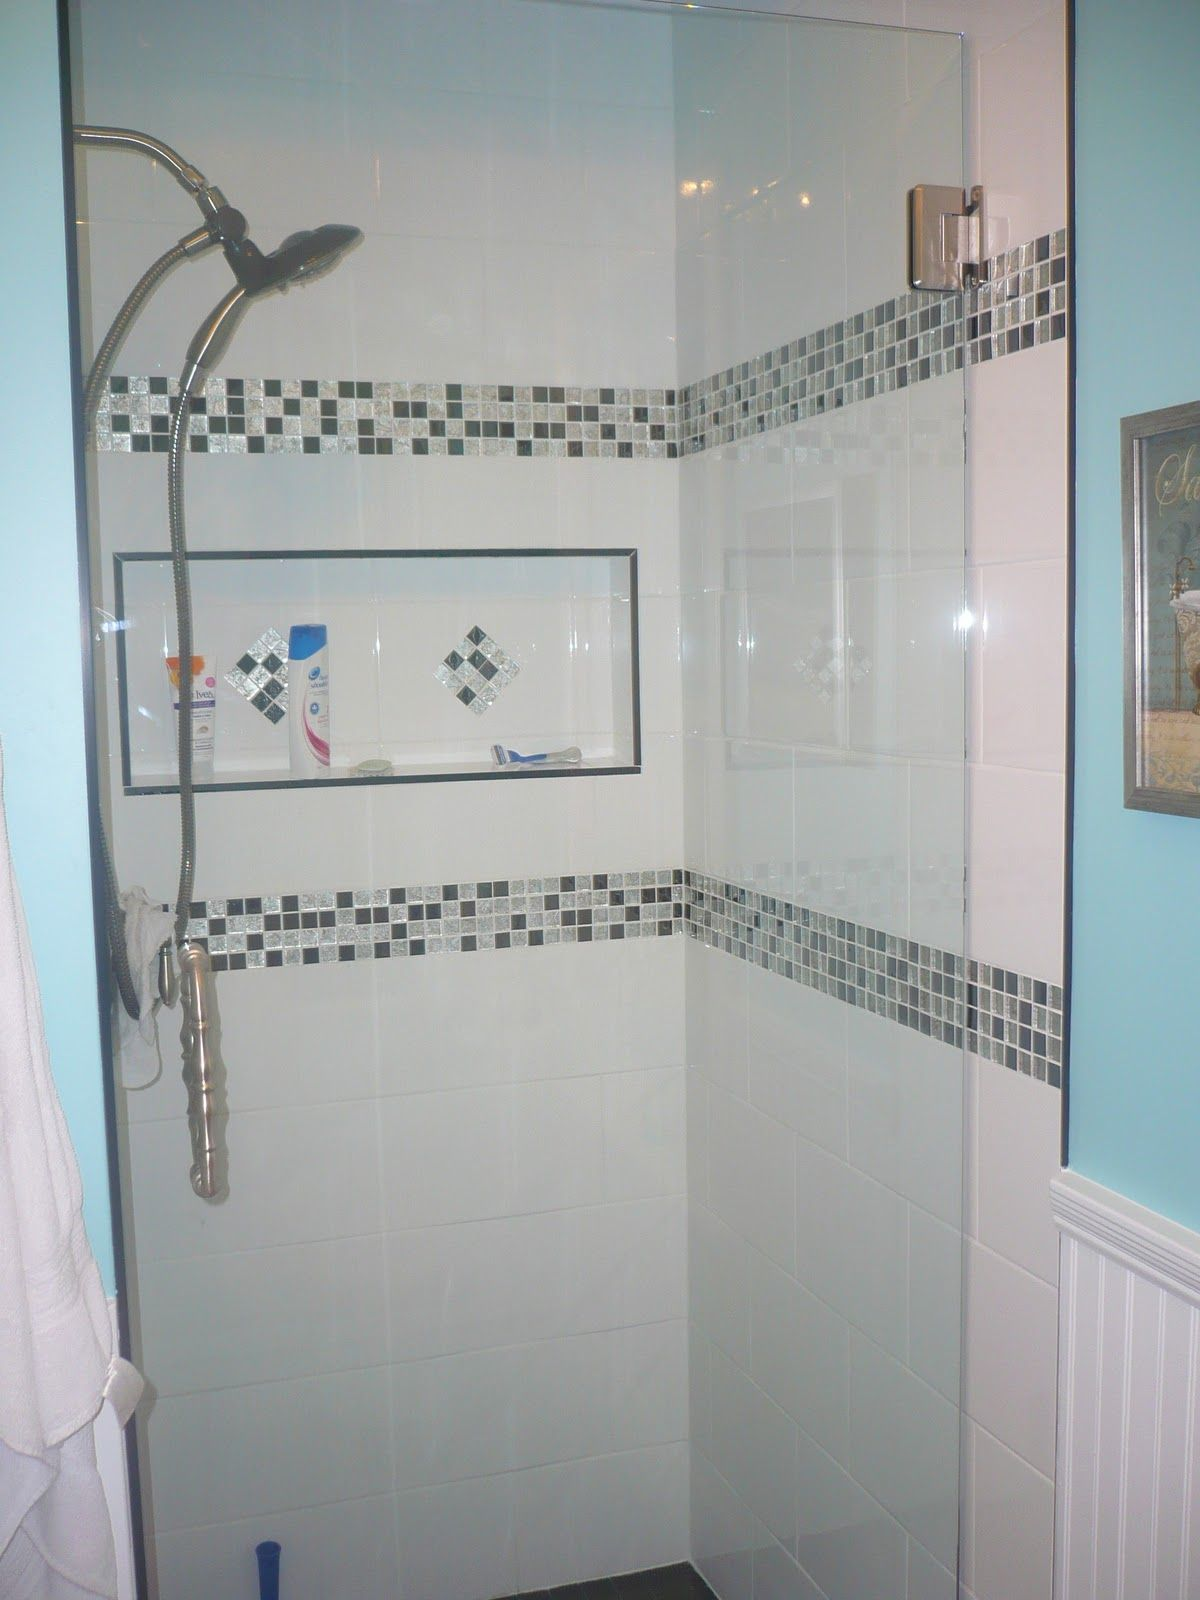 Small Decorative Tiles 2 Bands Composed Of Small Squares Like The Niche  Bathroom